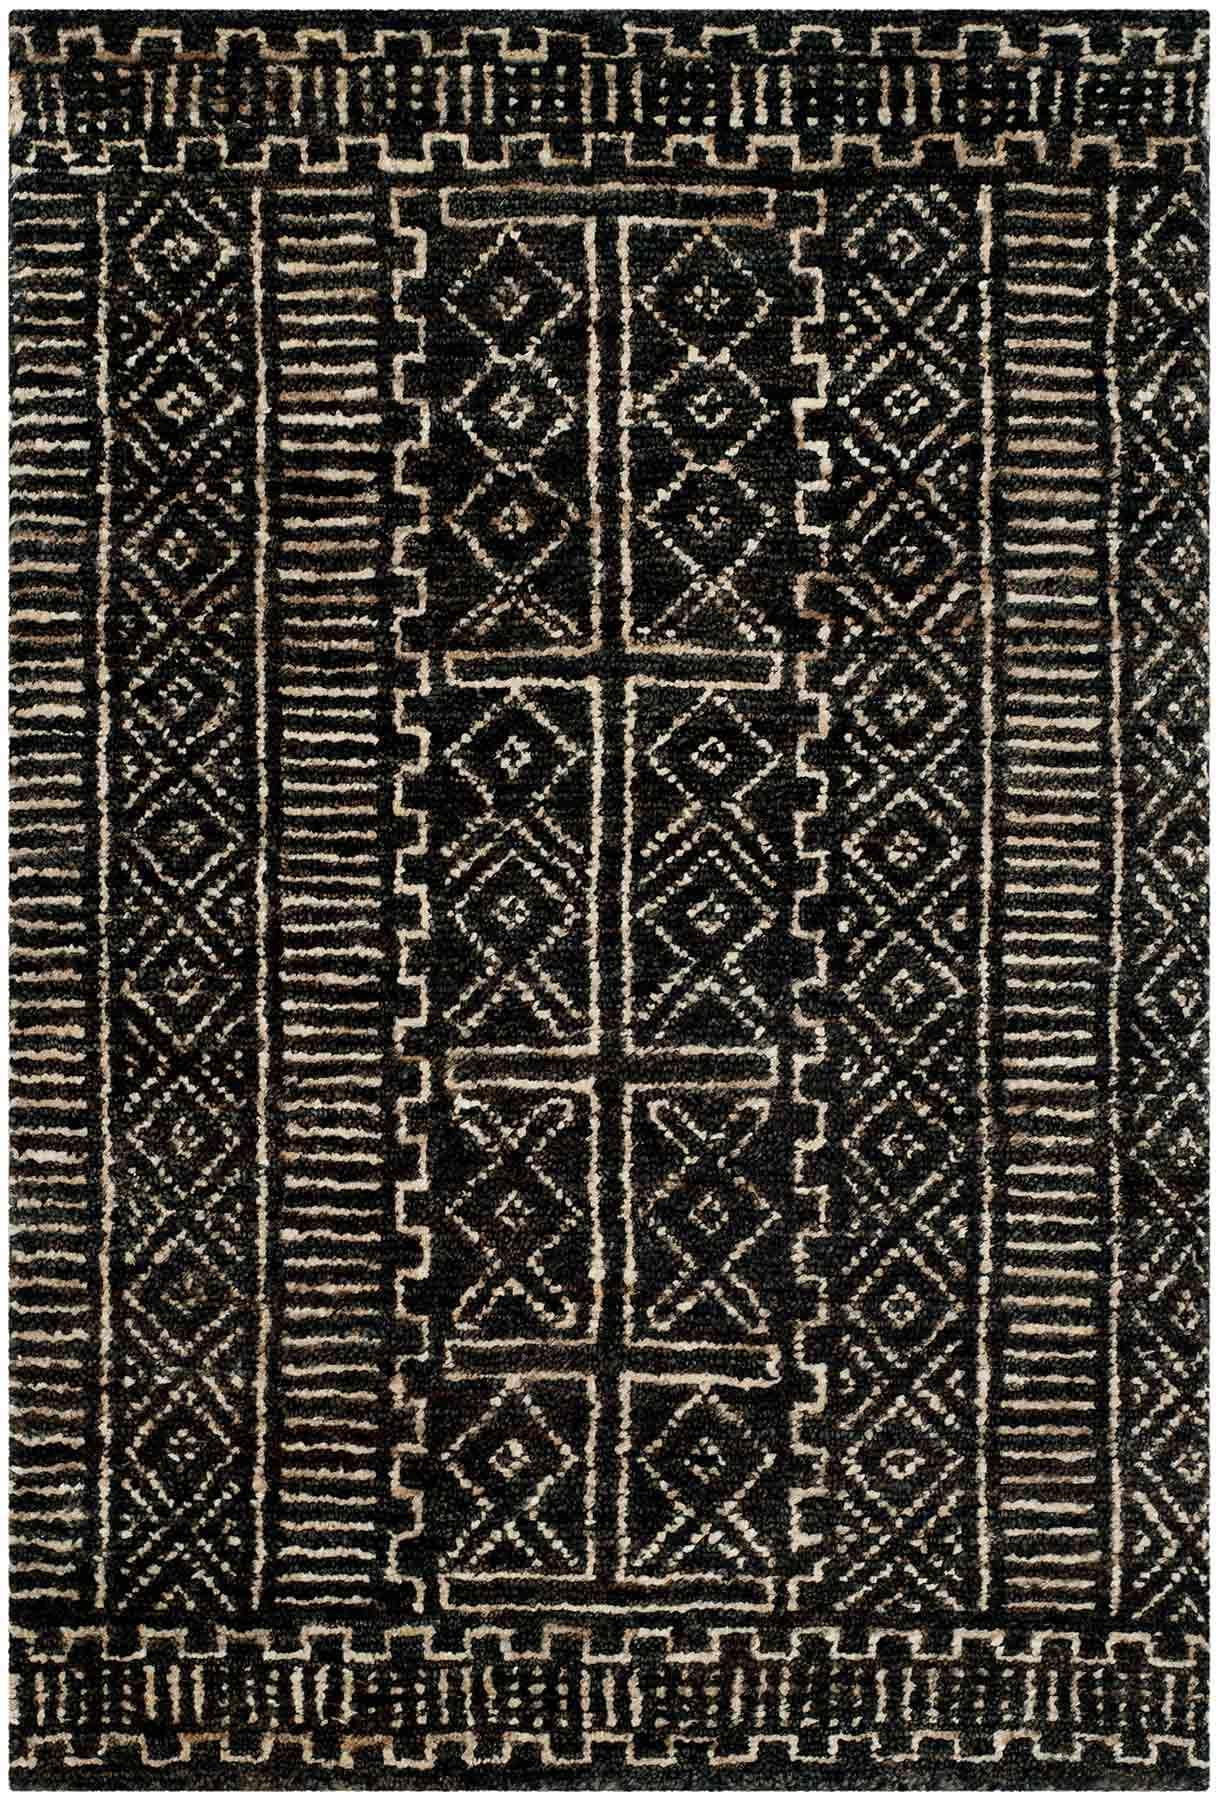 Kenya Rug A Tribal Patterned Area Inspired By Authentic African Kuba Cloth Ralph Lauren Safavieh